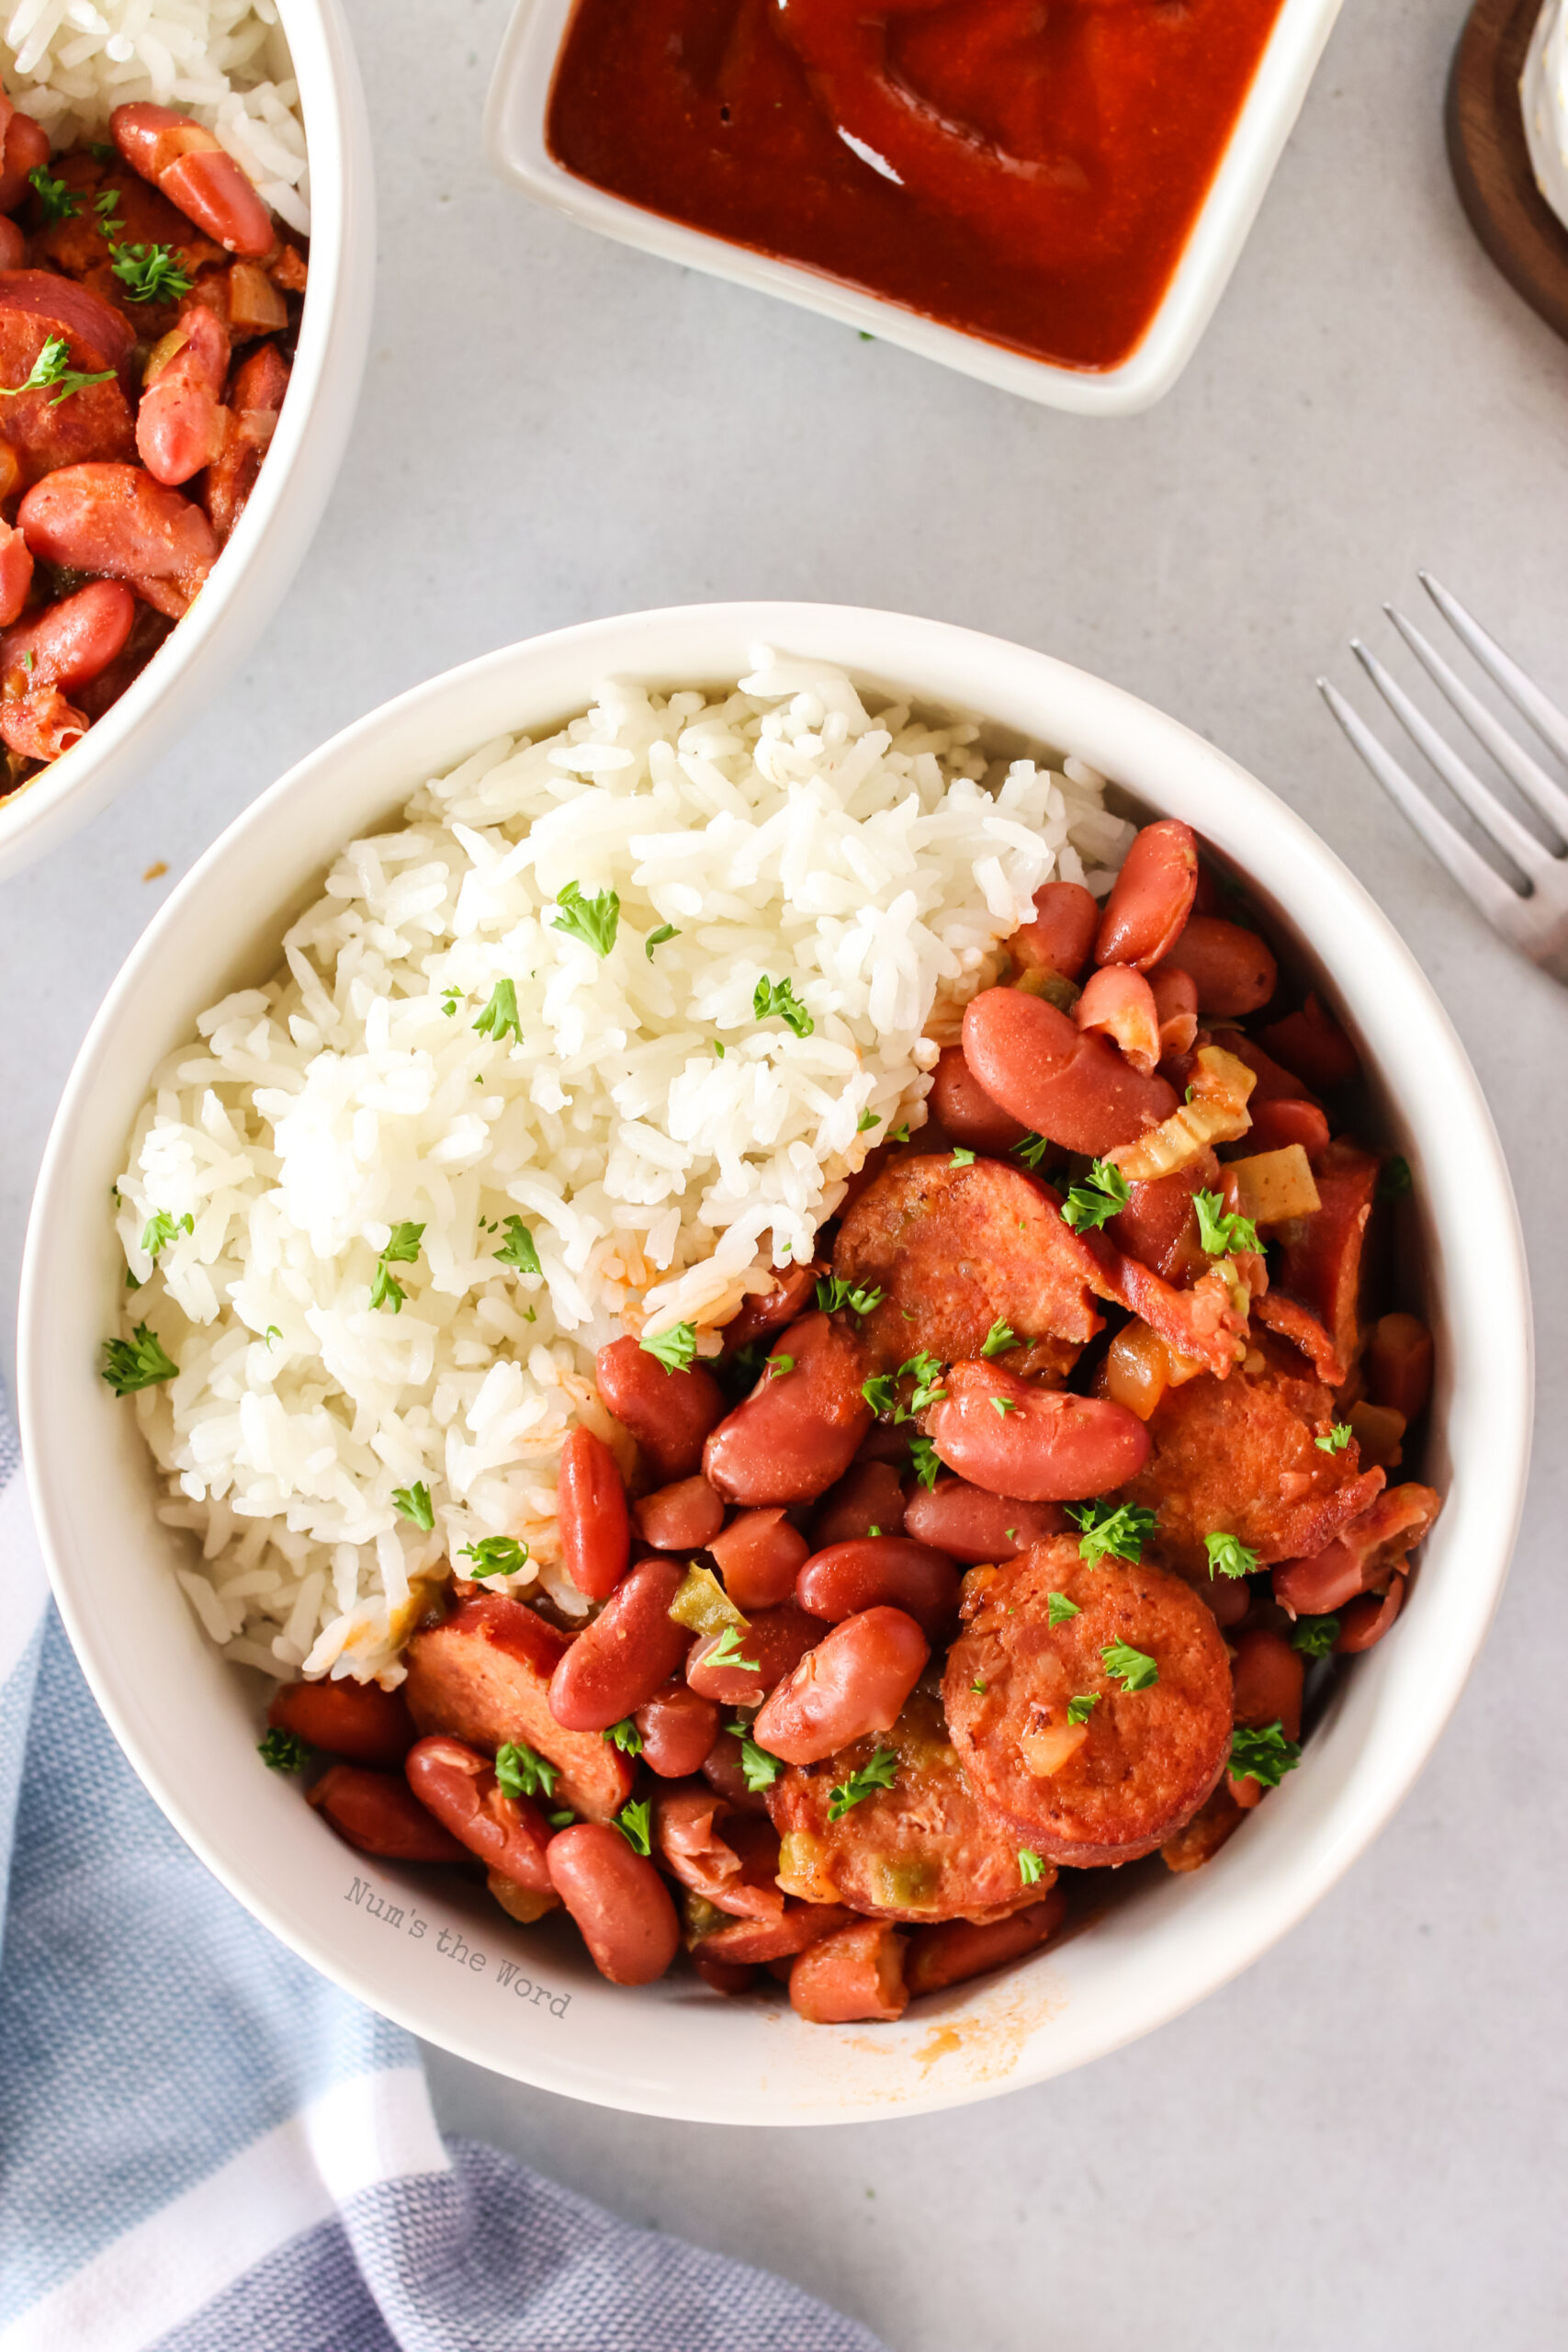 red beans and rice, cooked and in a bowl with rice. Image is taken from the top looking down.